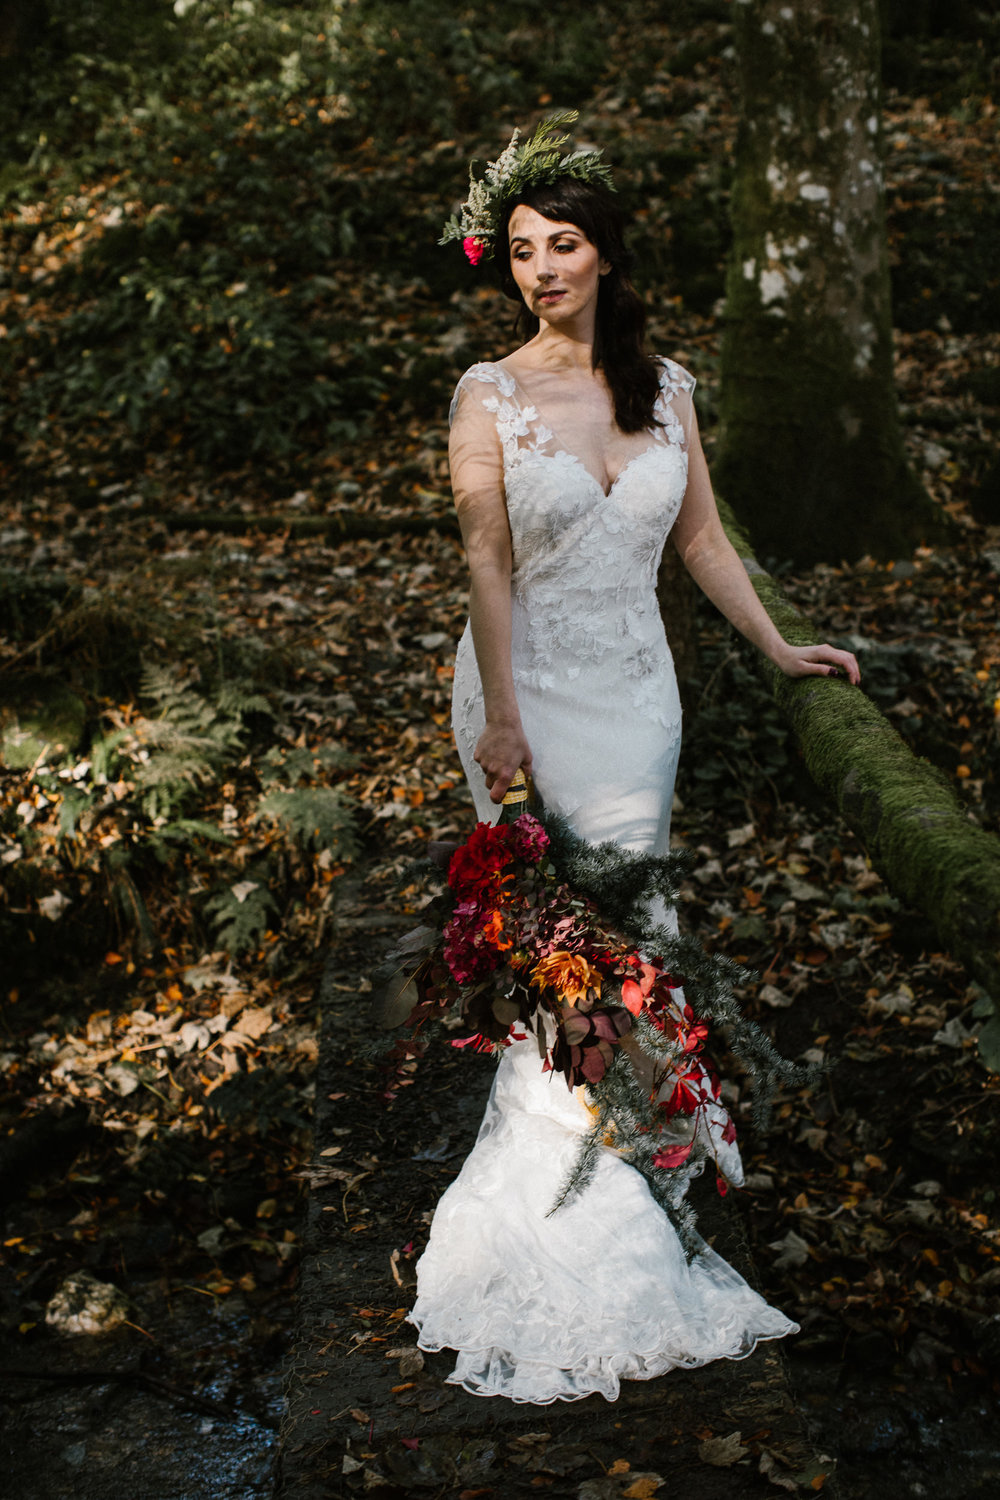 clairebyrnephotography-styled-shoot-huntingbrook-gardens-inspiration-weddings-woods-forest-71.jpg